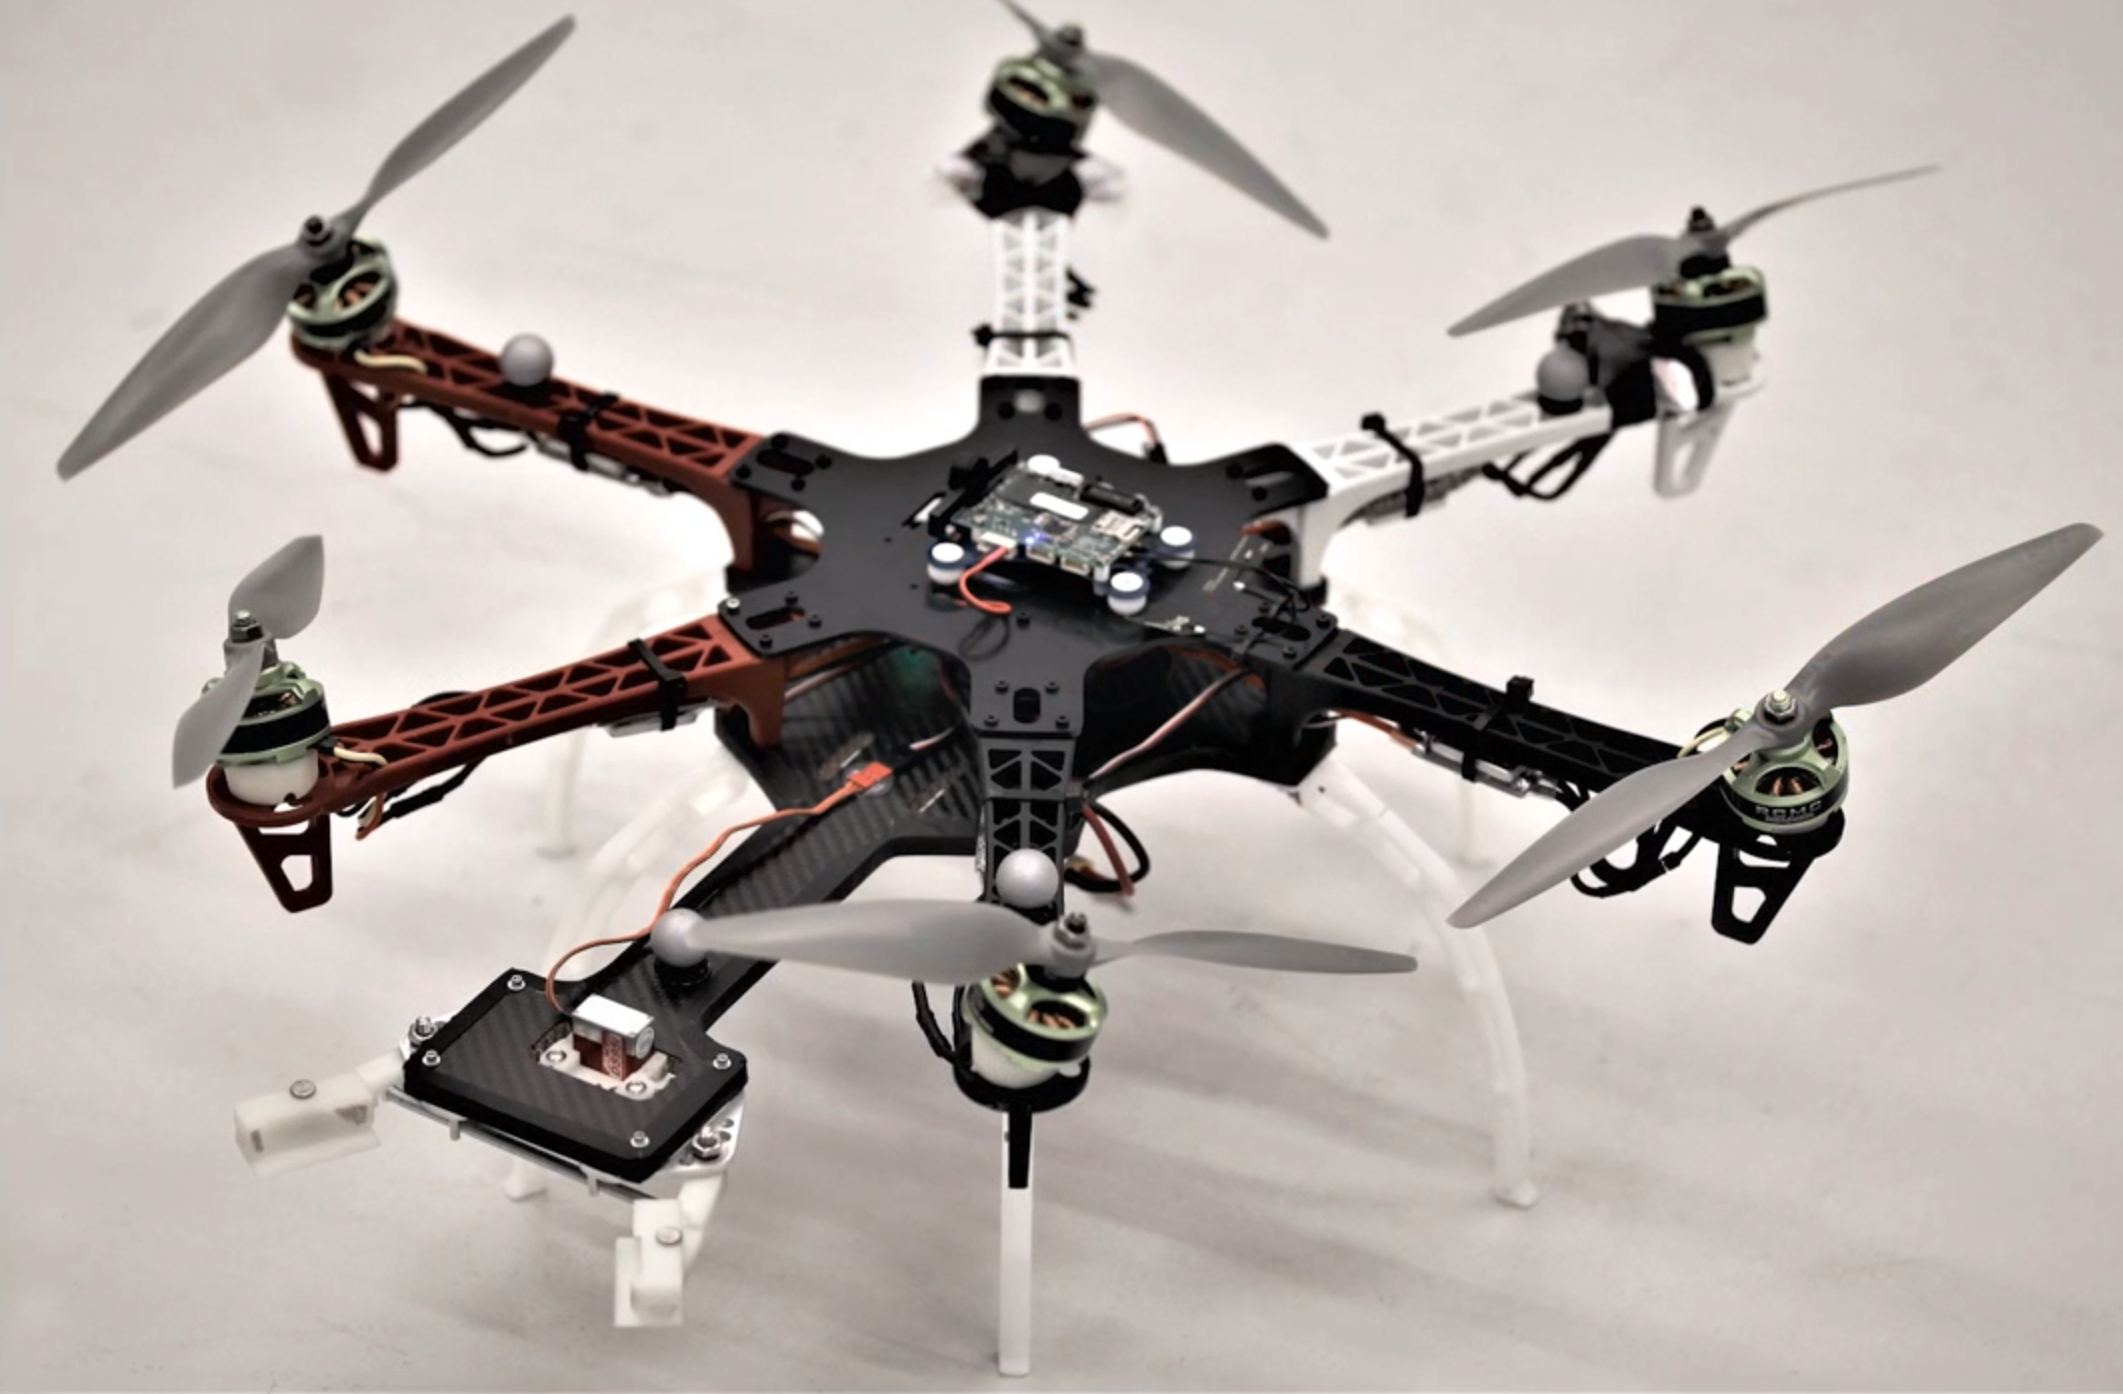 Agile Plate Transport with a Hexacopter with Canted Motors